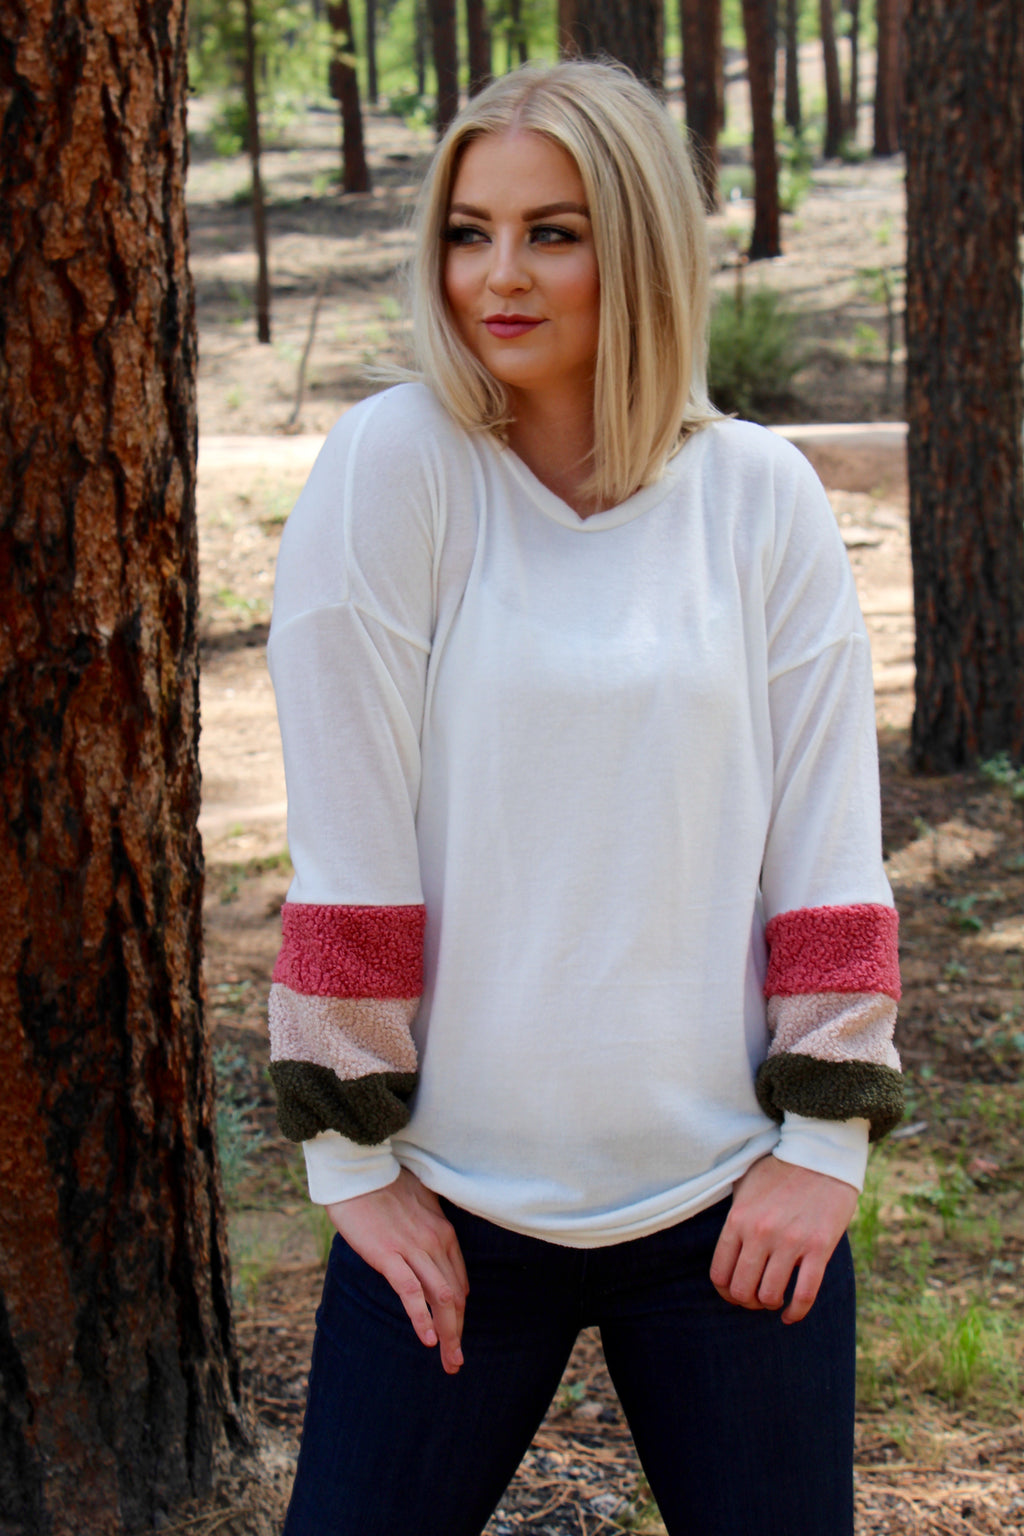 The Aspen Long Sleeve Top